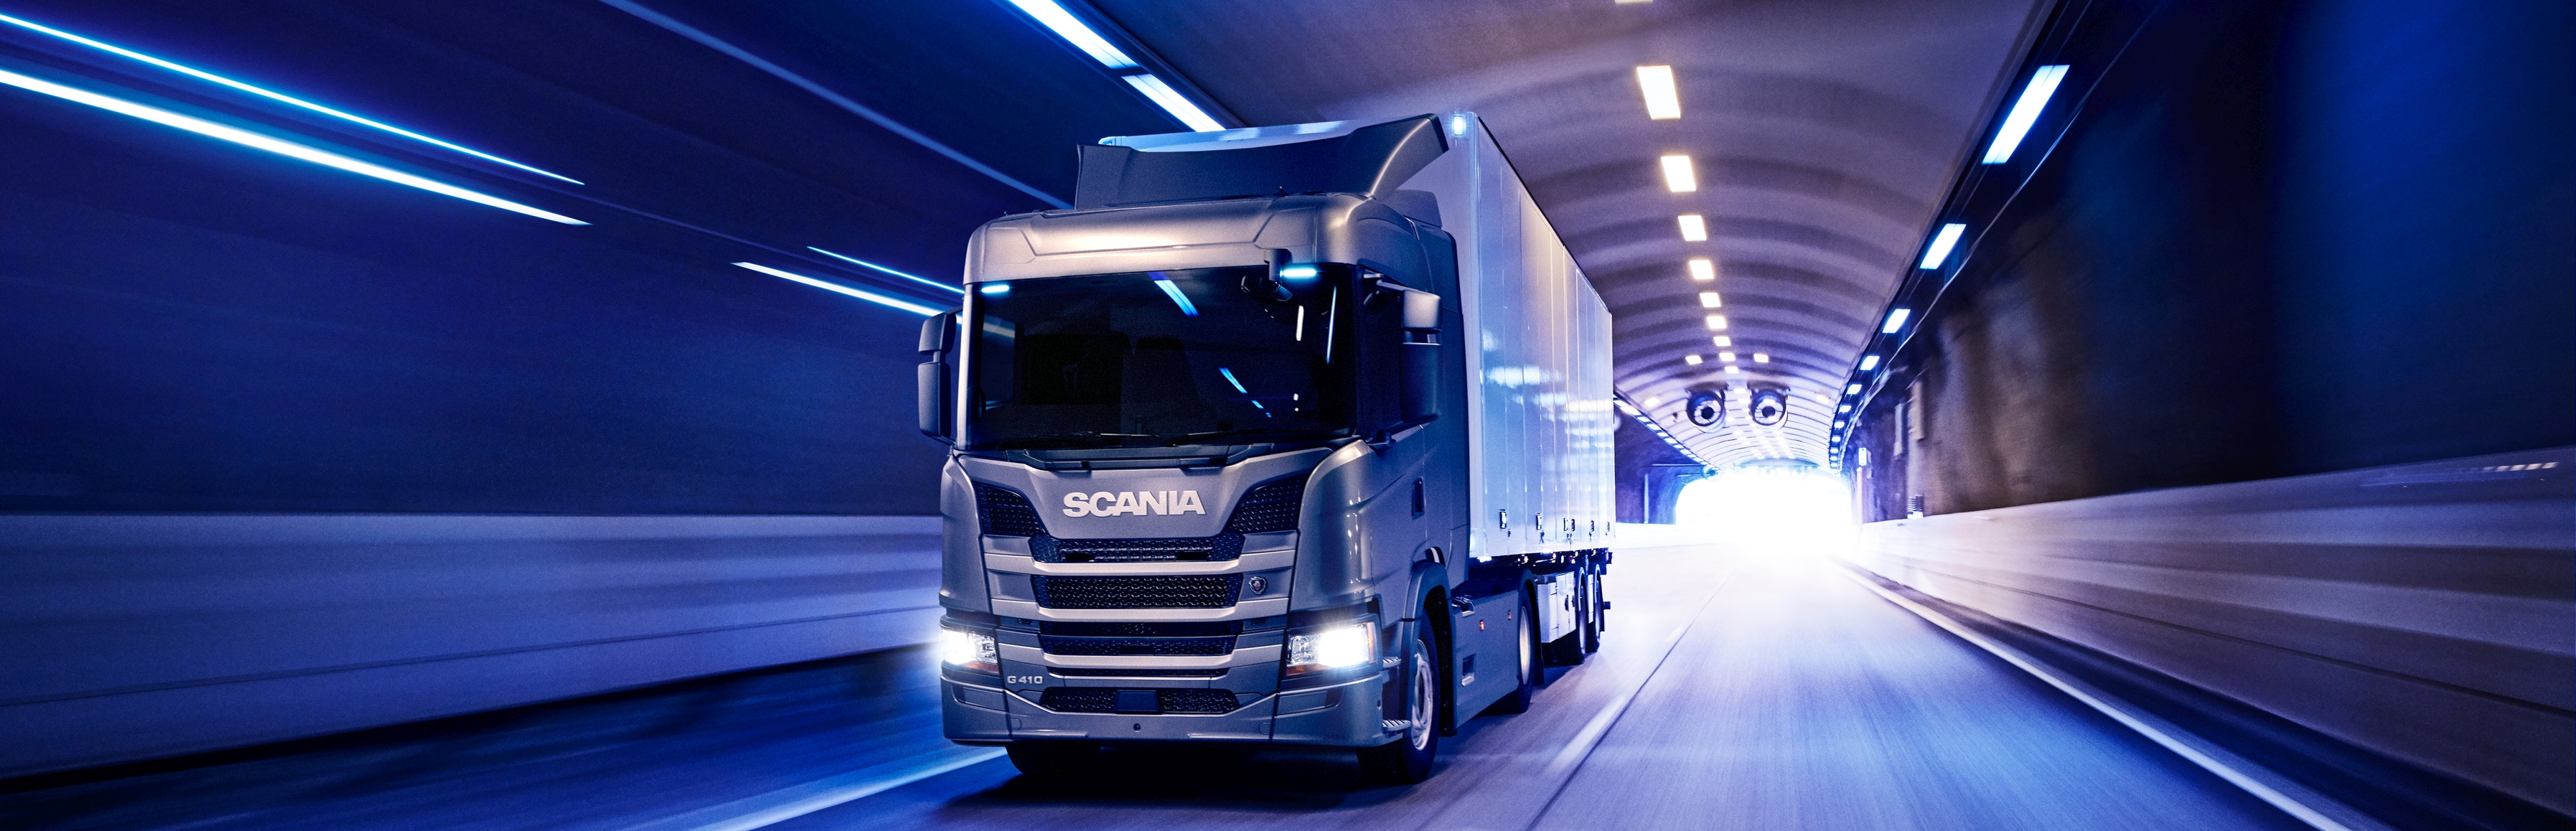 Scania G 410 4x2, general cargo transport